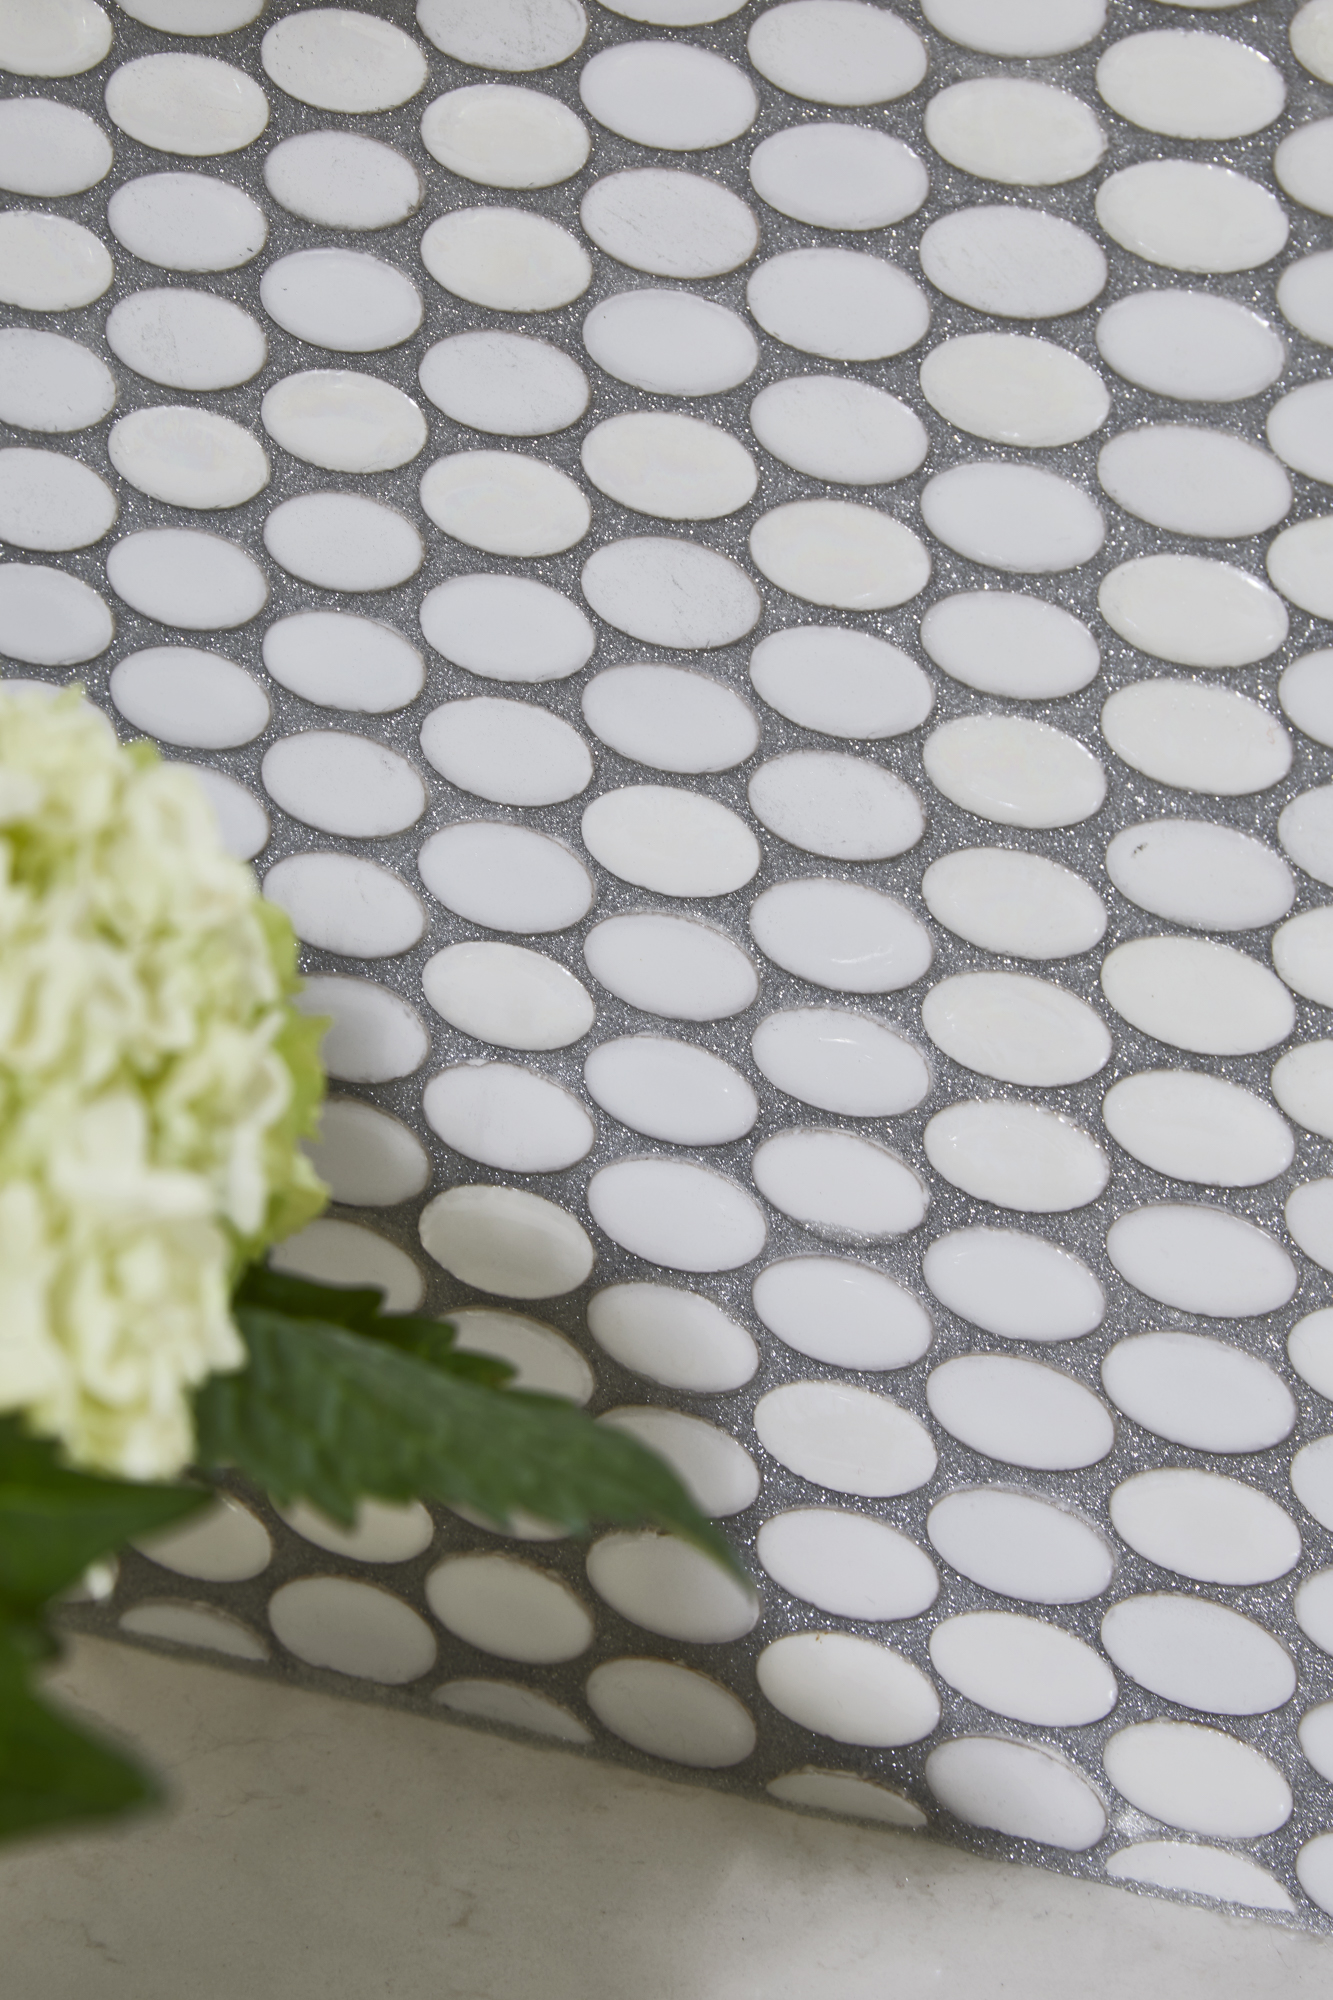 - Glitter Grout Trend - How To Make Your Tile Look More Luxe With